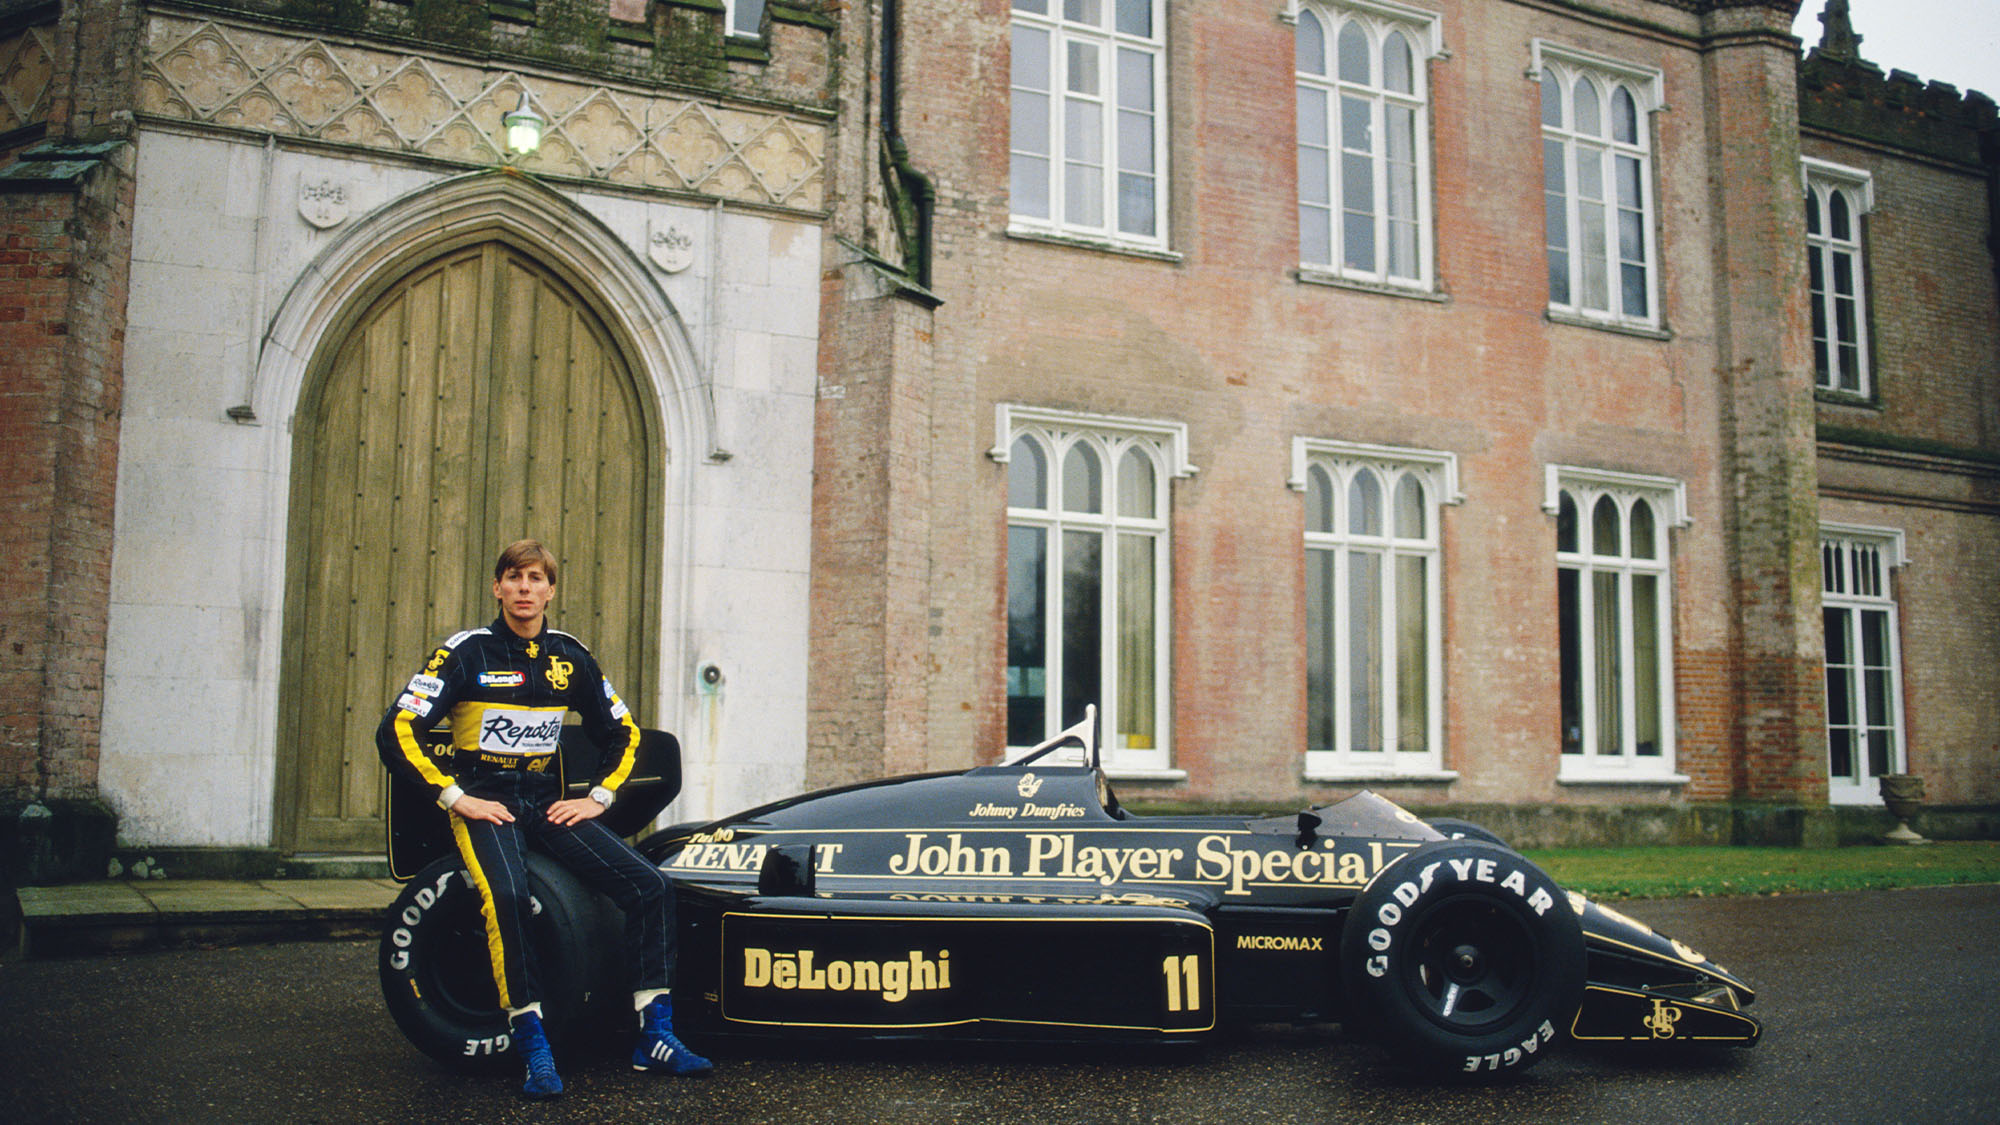 Racing driver Johnny Bute ,Marquess of Bute aka Johnny Crichton-Stuart and Johnny Dumfries drives poses with the John Player Special Lotus-Renault 98Tat Ketteringham Hall the home of Lotus cars January 1986 at Ketteringham Hall in Ketteringham, Great Britain. (Photo by Simon Miles/Getty Images)